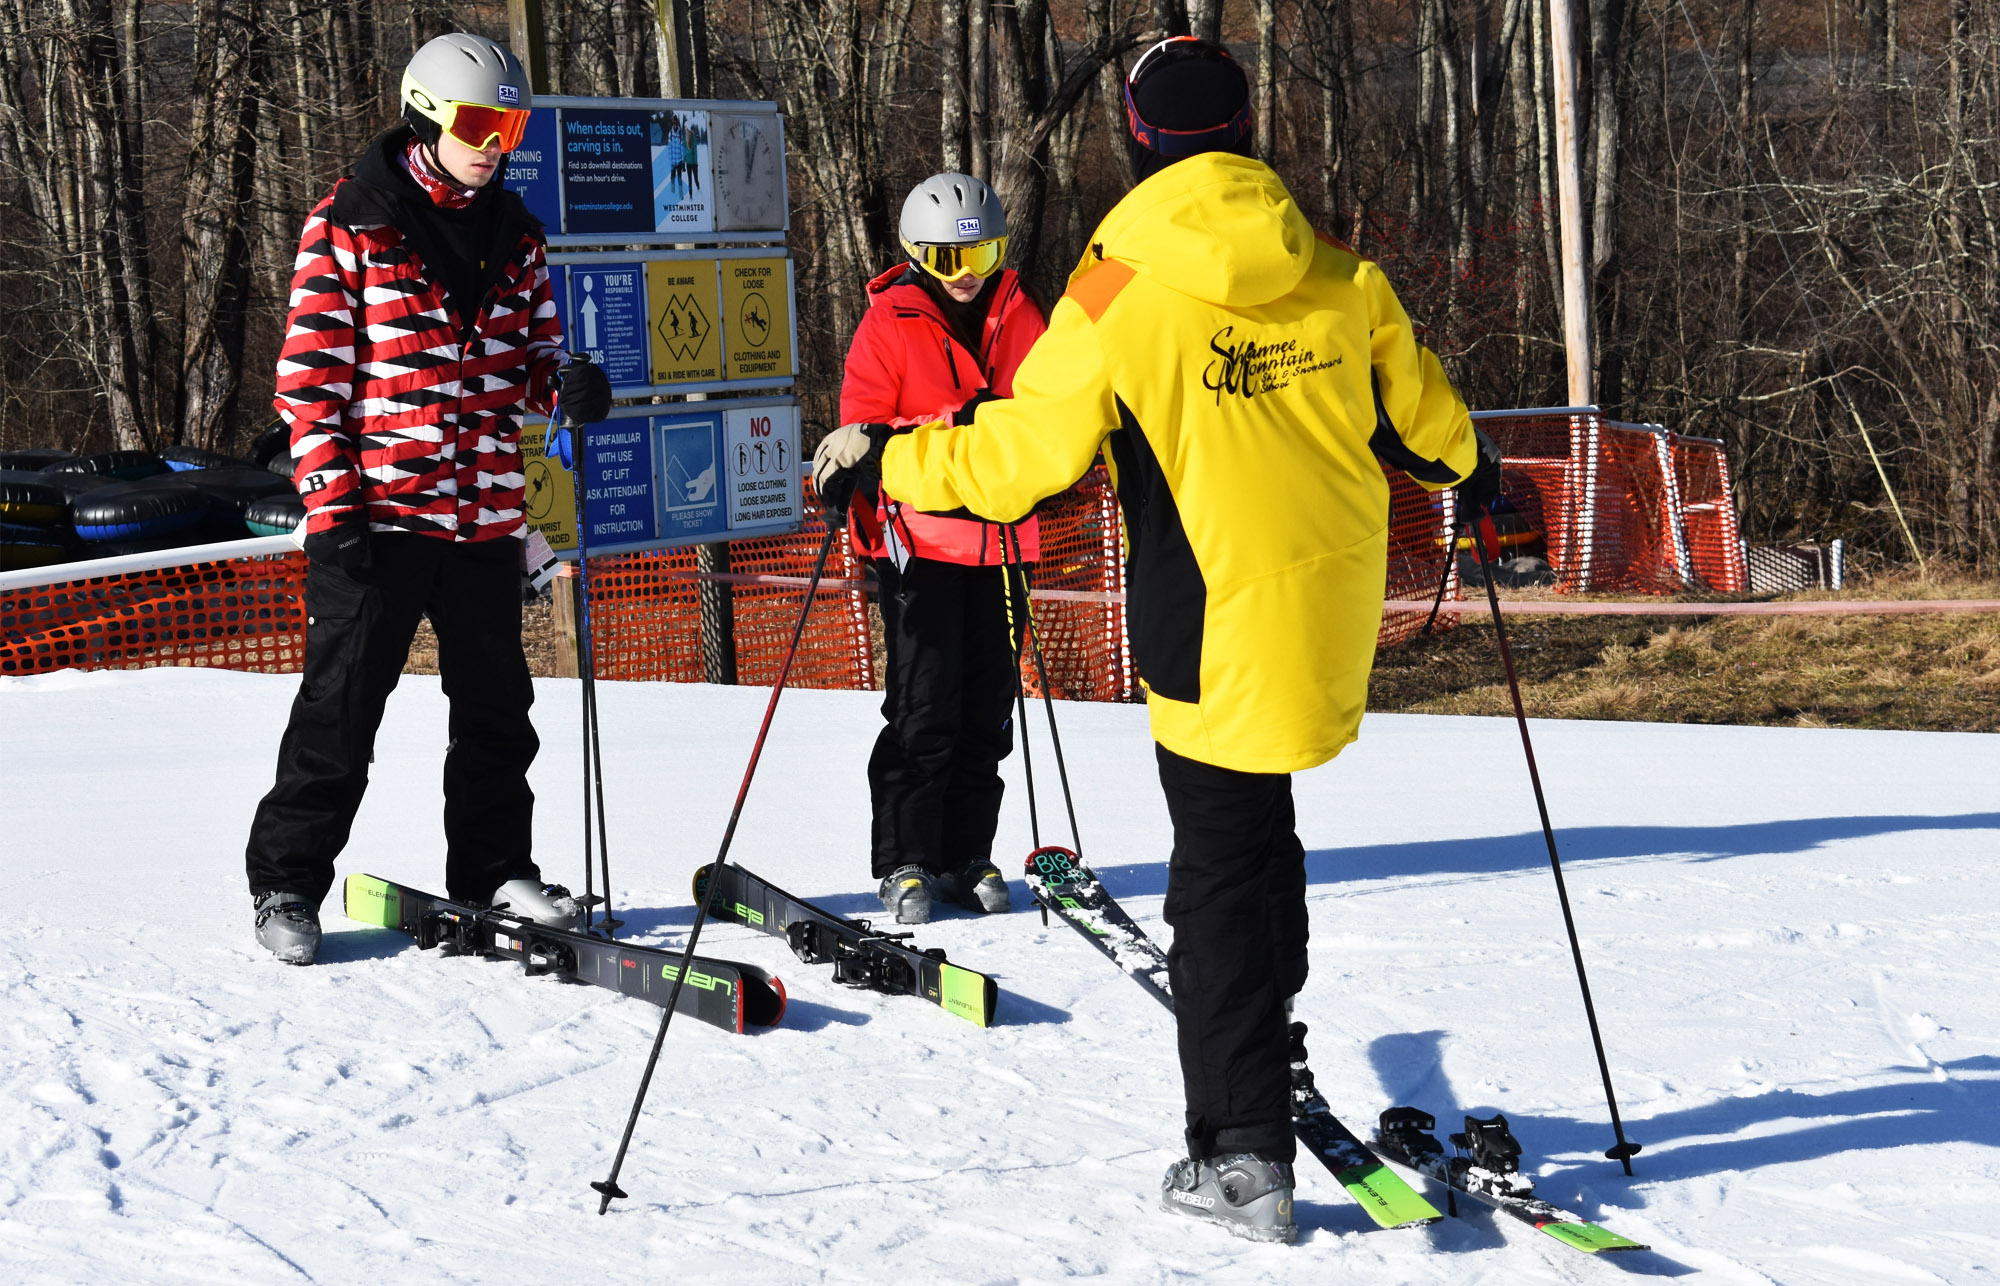 Beginner Ski Lesson at Shawnee Mountain